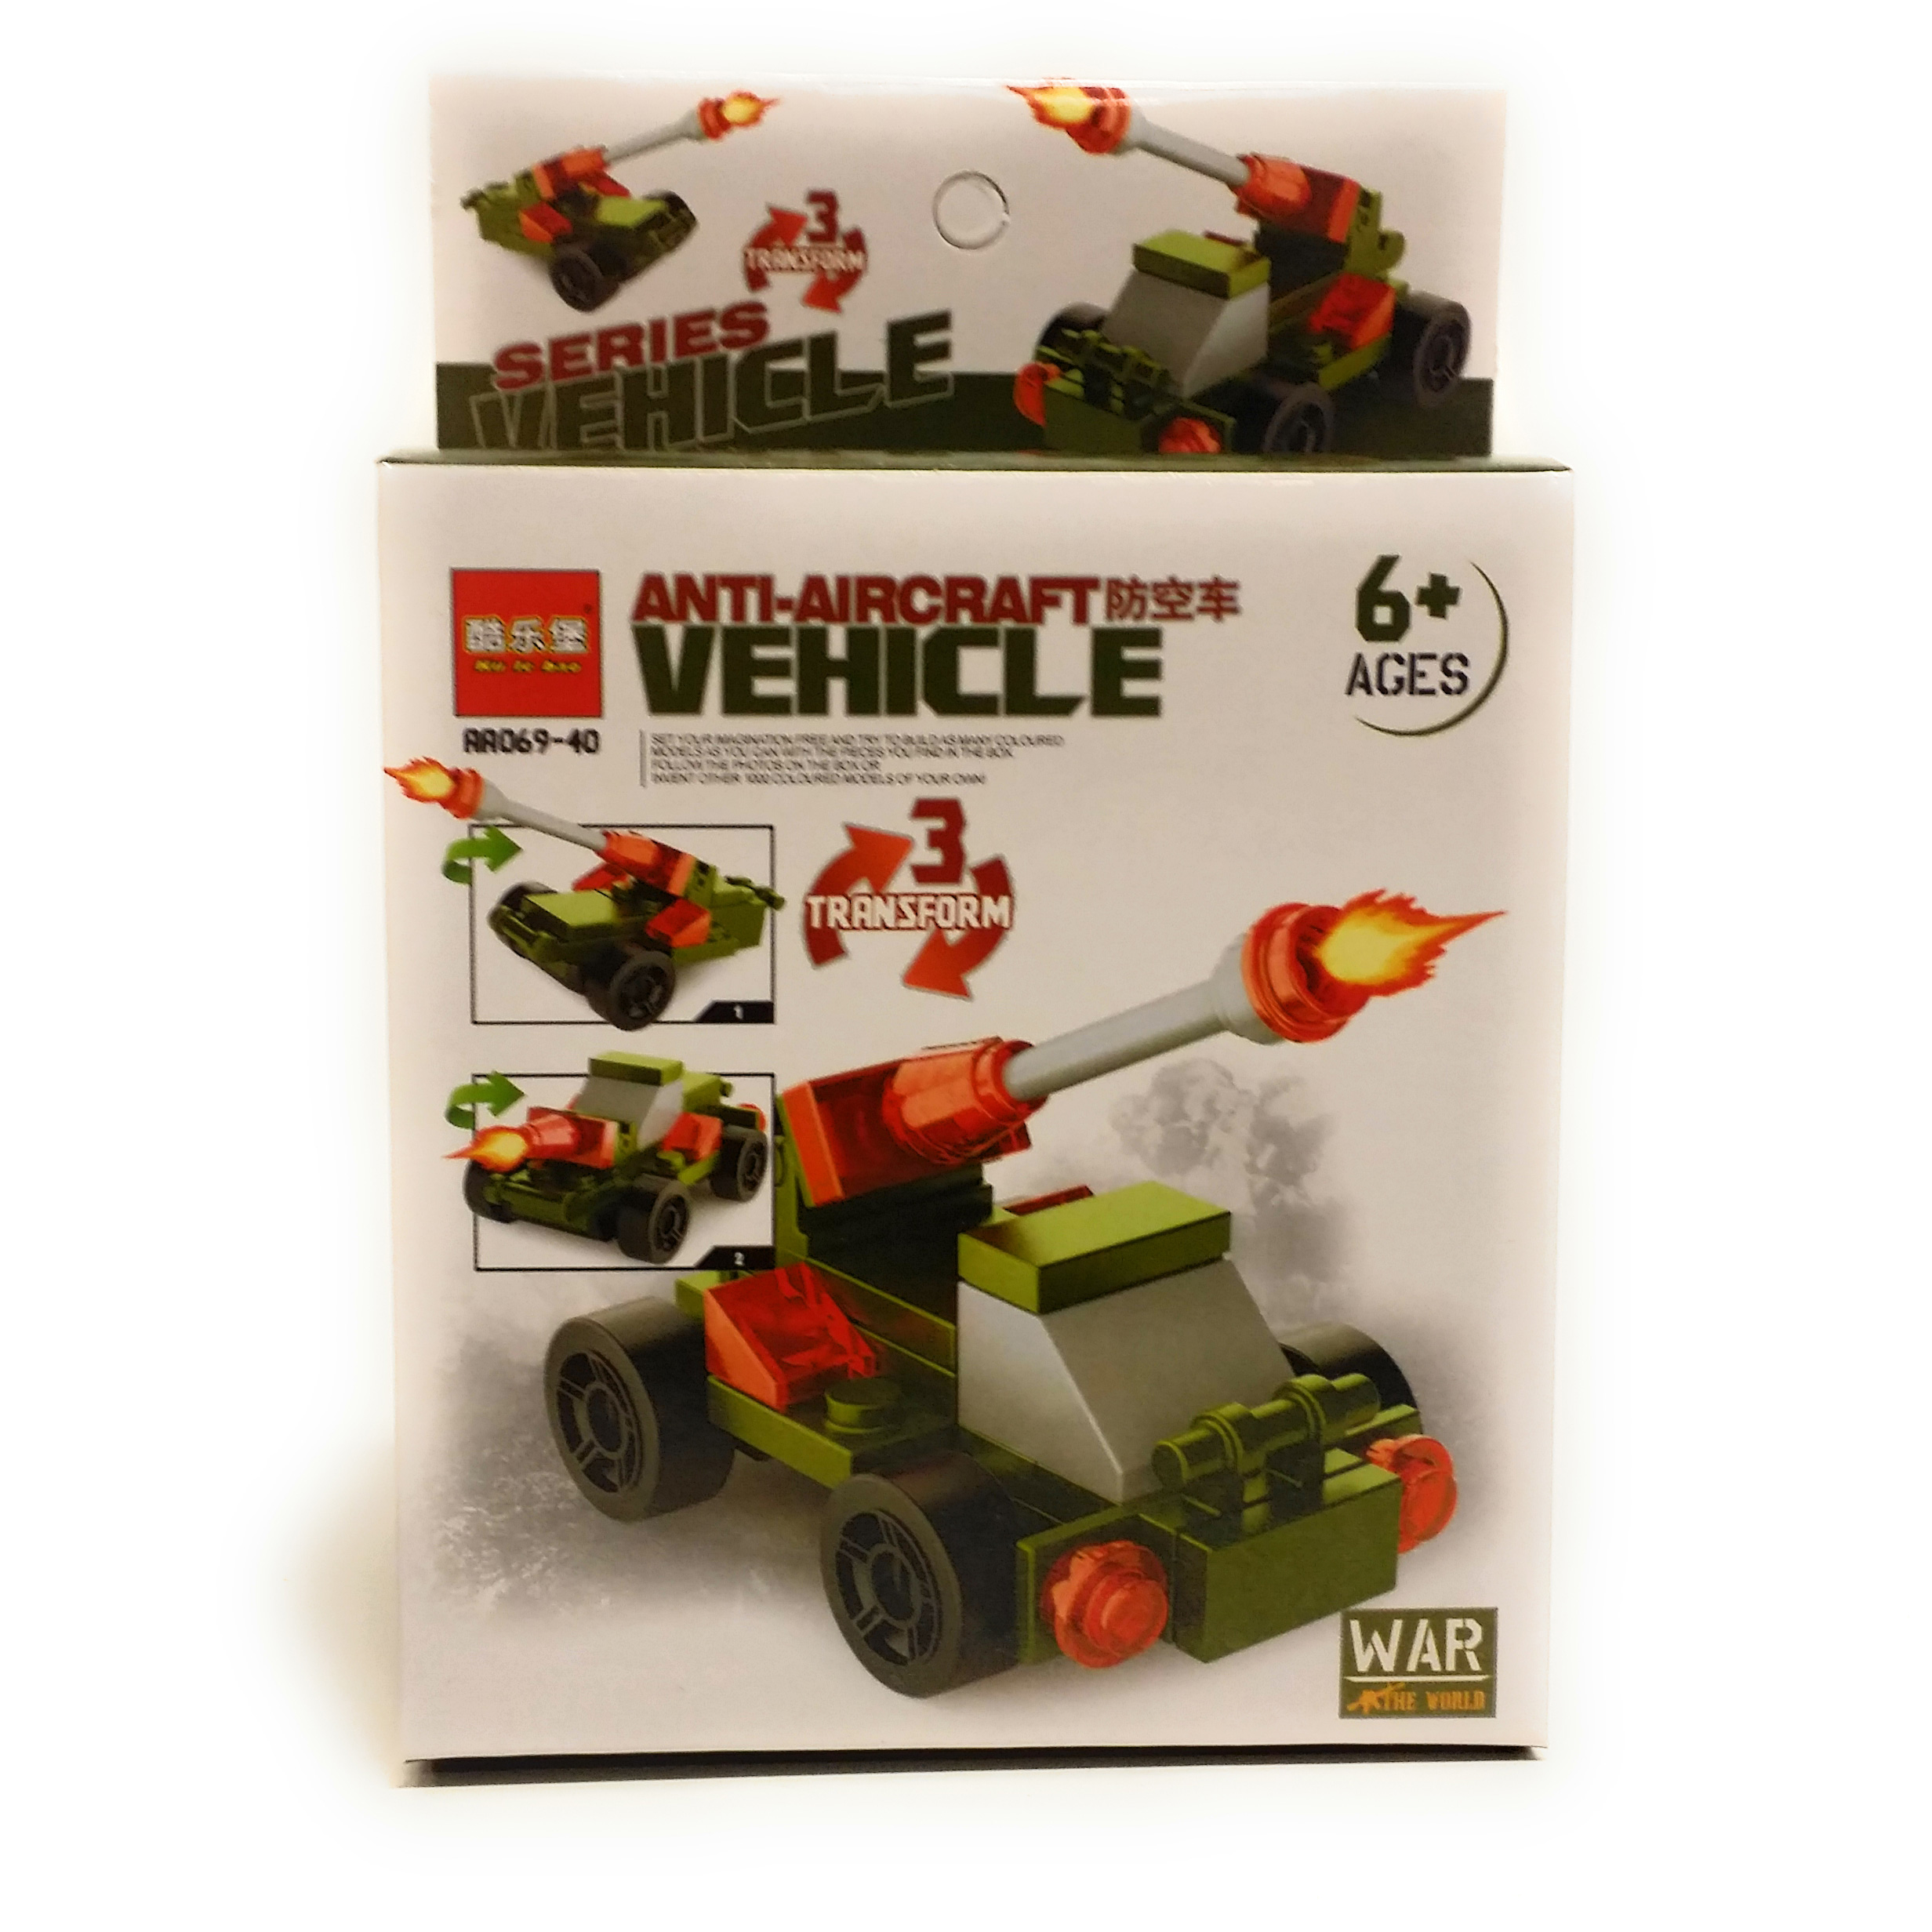 Science Fiction Army Anti-Aircraft Vehicle 28 Pc Building Block Set, Green by Hayes Specialties